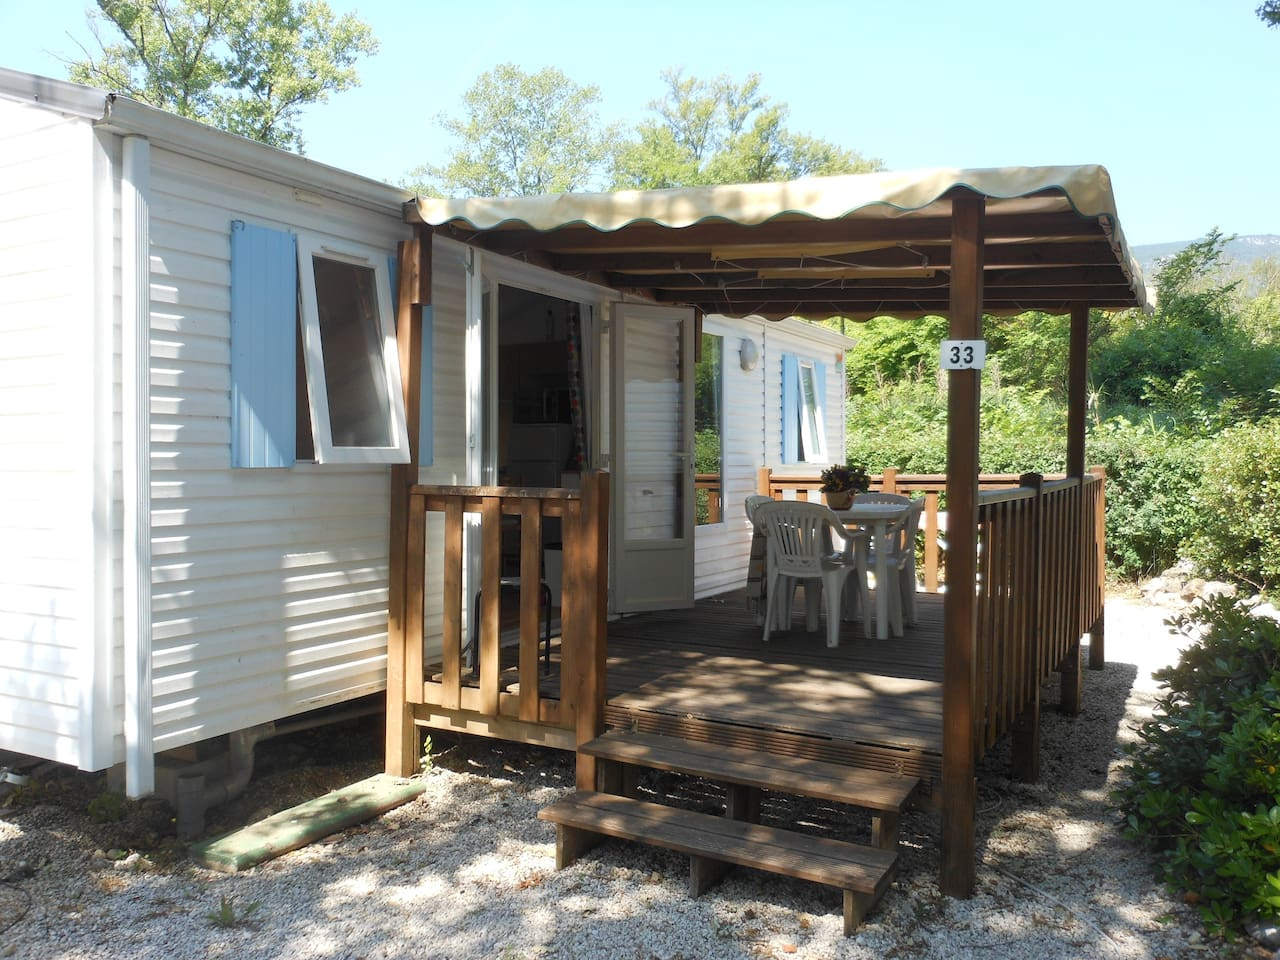 4/6 berth mobile home 20 minutes from Nice or Antibes. Situated in a valley surrounded by beautiful hills.